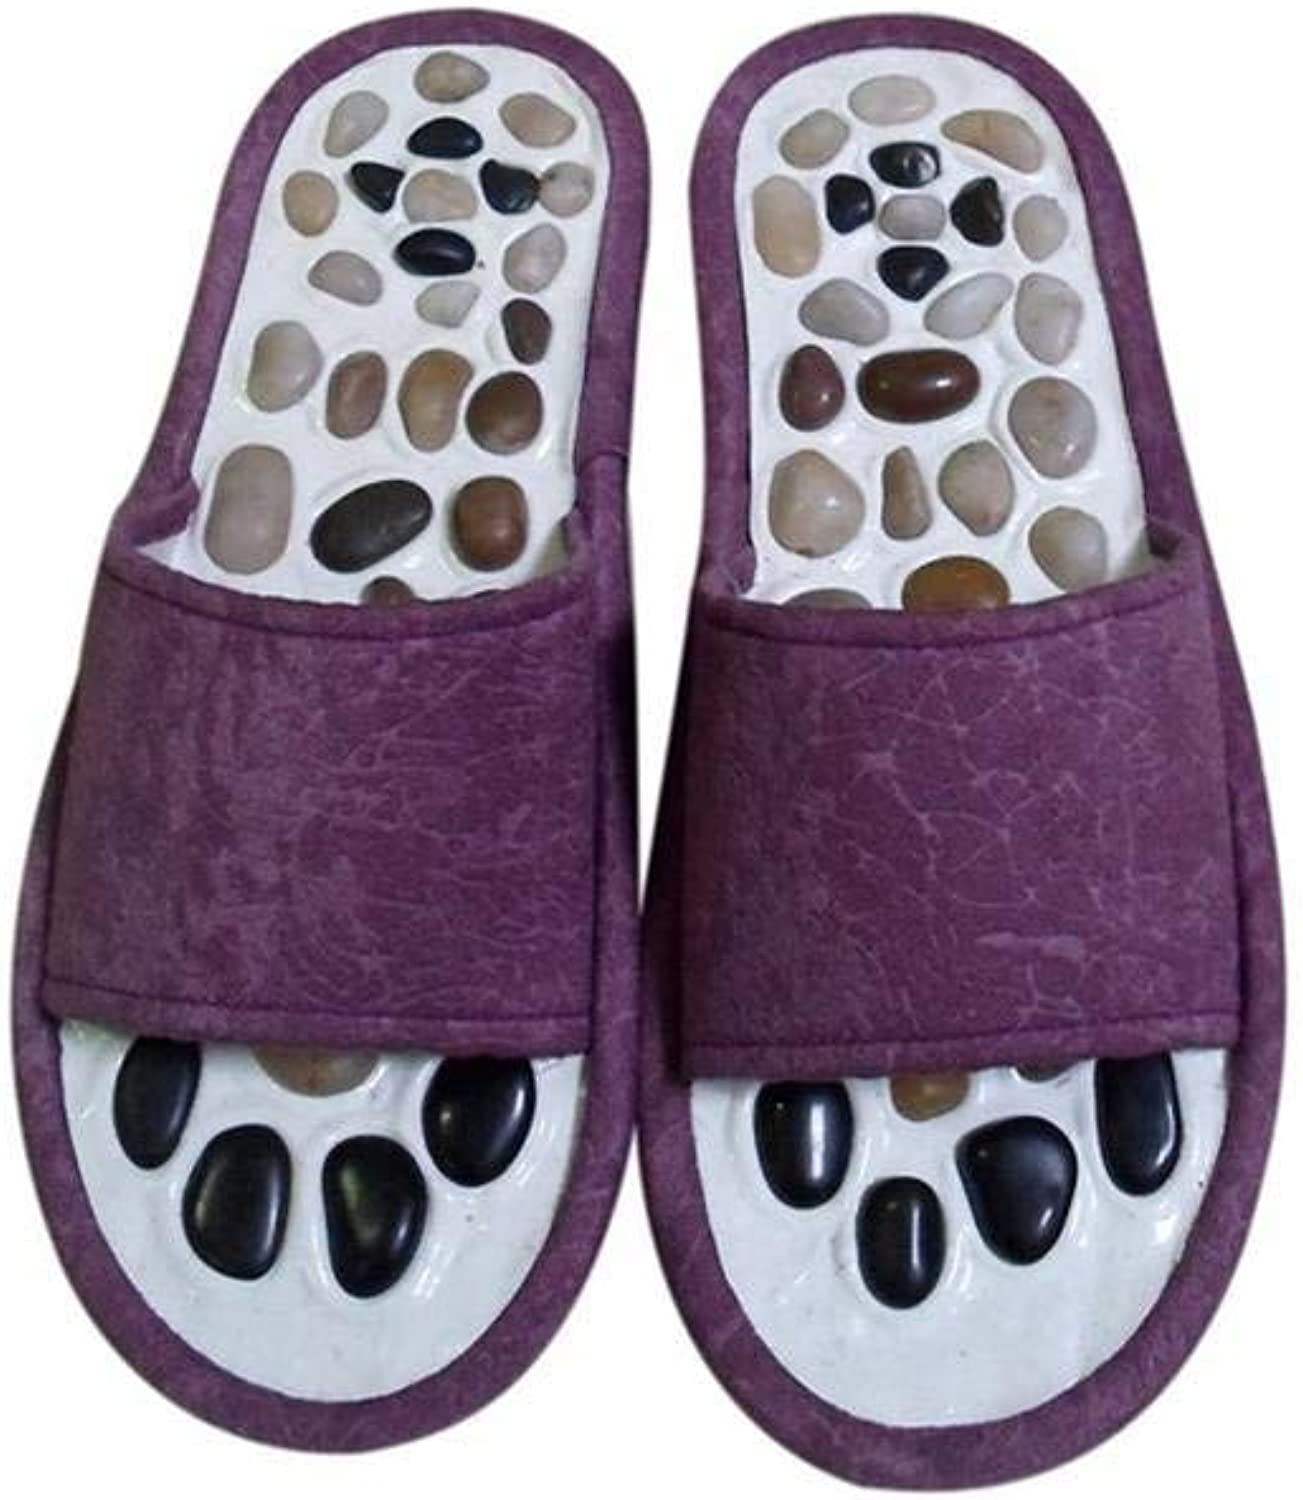 JaHGDU Lady Massage Slippers Natural Pebble Massage Foot Point Health Home Slippers for Women Purple bluee Red